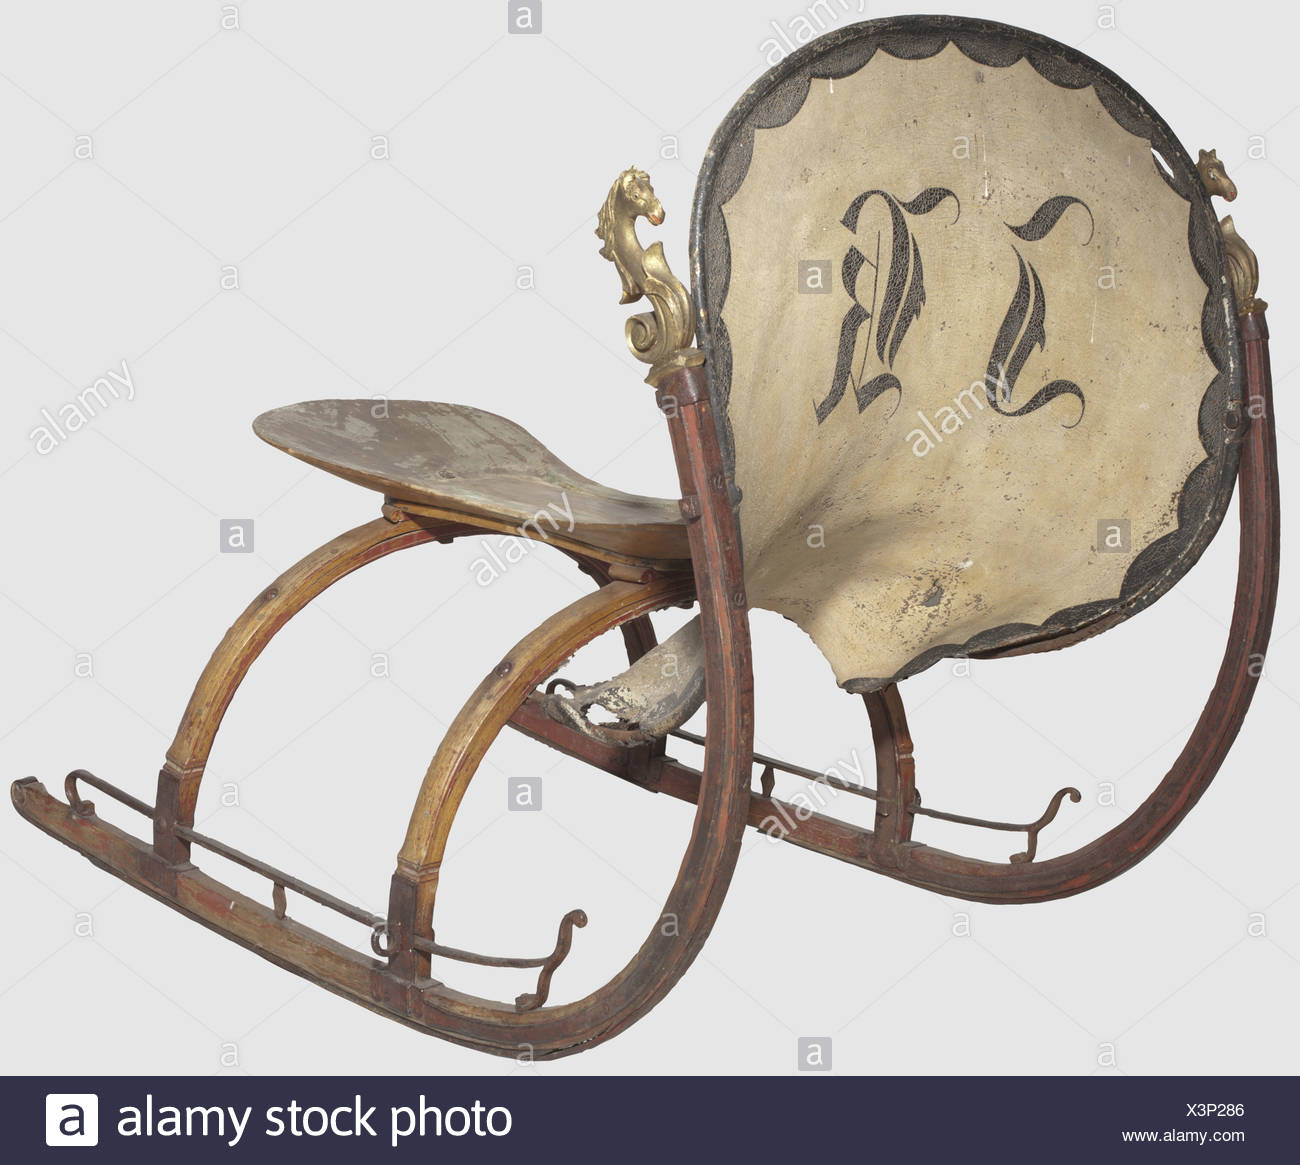 """A German horse-drawn sleigh, mid 19th century Light wooden sleigh with iron fittings. The high curved runners are crowned with a carved horse's head in full relief. Leather harness painted in colour with the monogram """"JK"""". Wooden seat. Height 109 cm. Length 132 cm, historic, historical, 19th century, hunt, hunts, hunting, utensil, piece of equipment, utensils, trophies, object, objects, stills, clipping, clippings, cut out, cut-out, cut-outs, Additional-Rights-Clearences-NA Stock Photo"""